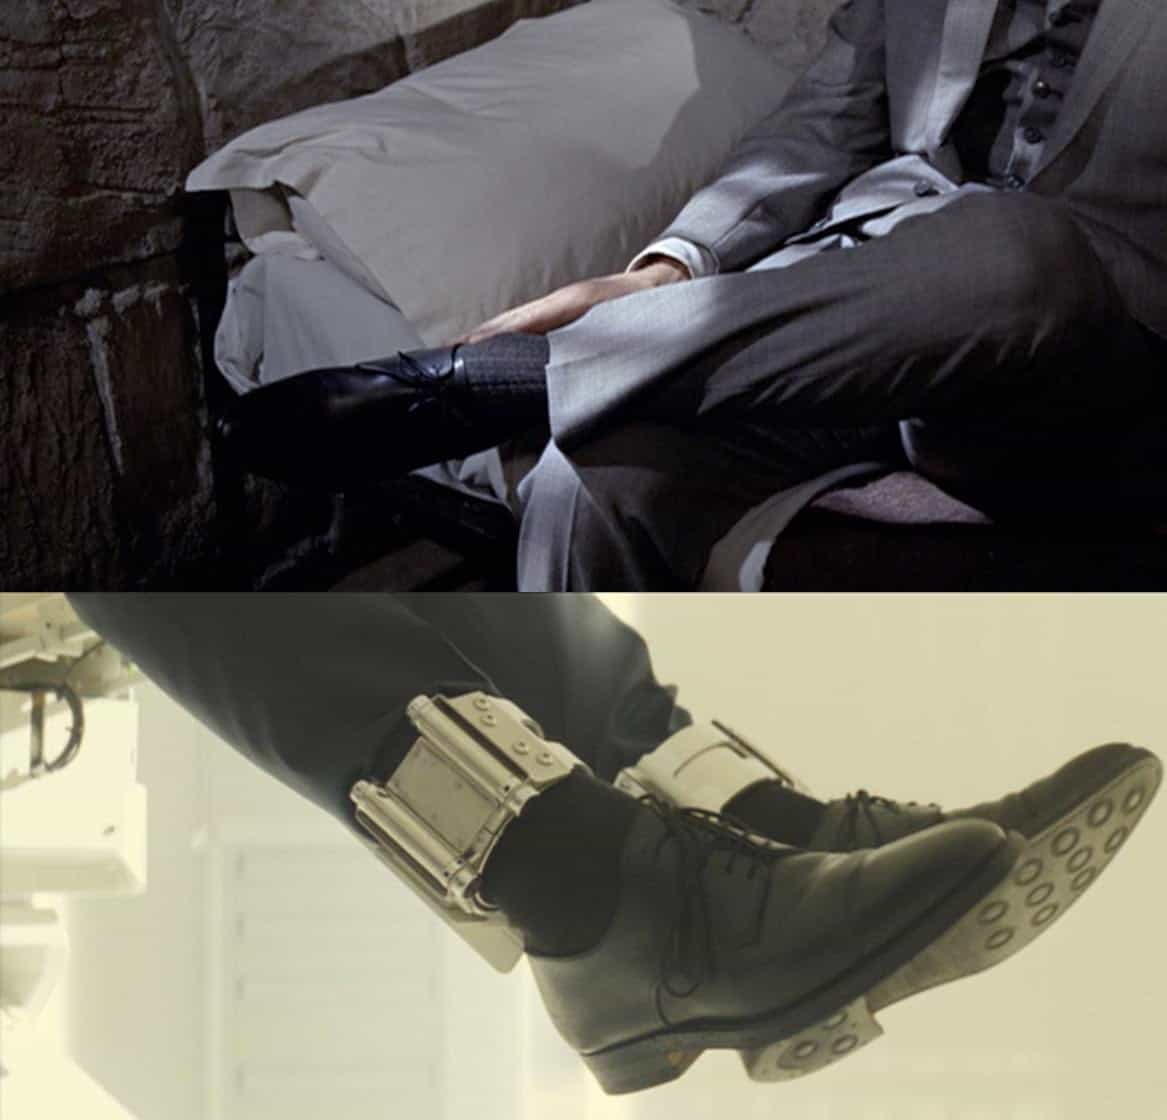 Comparison image showing the evolution of Bond's derby dress shoes from Goldfinger to contemporary